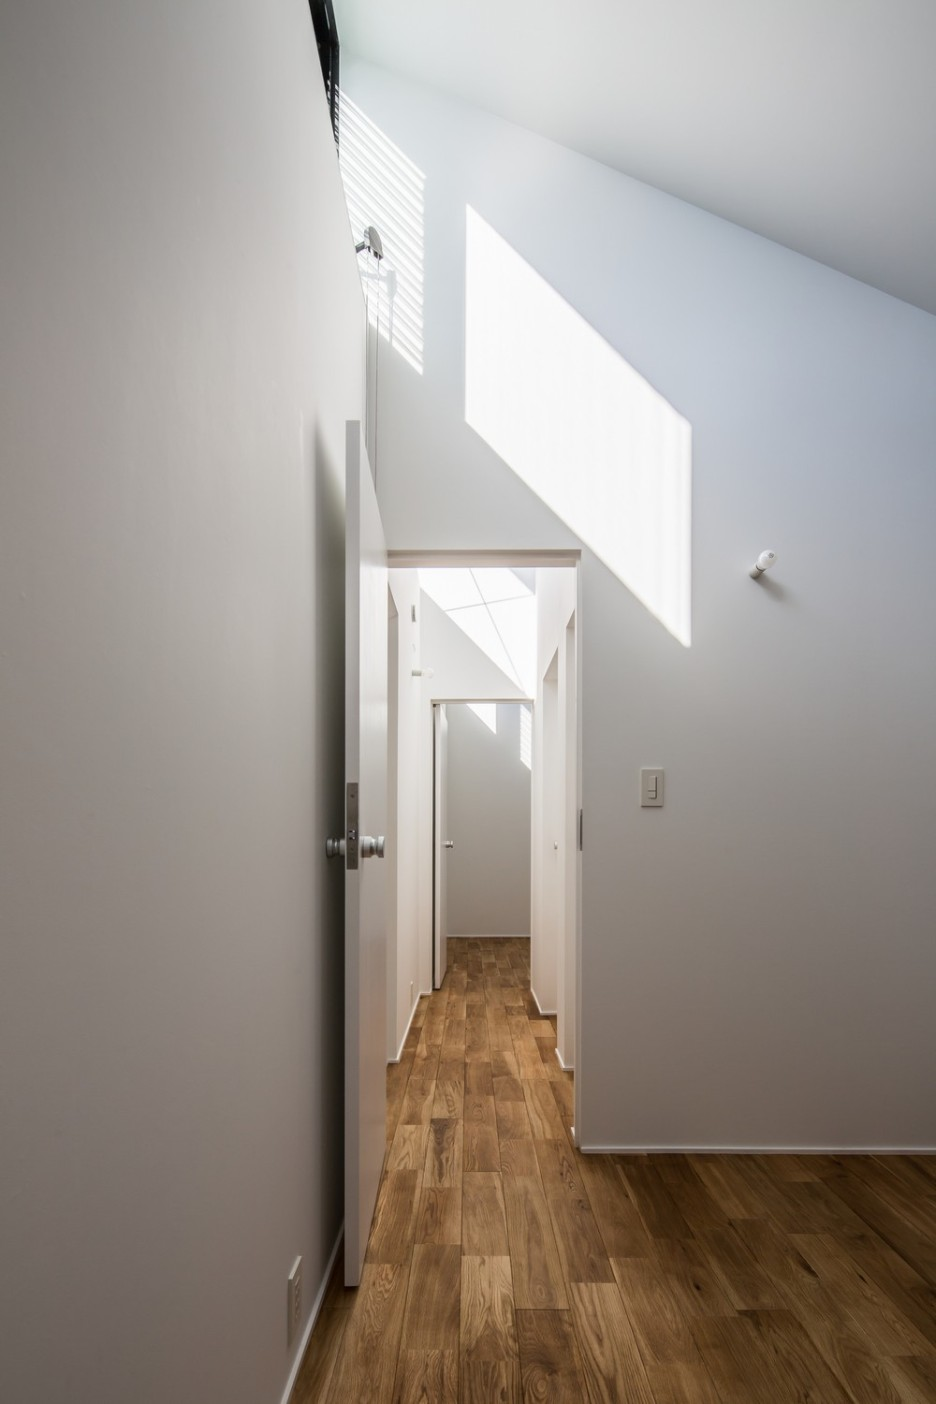 Modern Japanese Architecture Home Gives Inspiring Design Idea: Wonderful Kawate Residence Home Design Interior In Hallway Decorated With Wooden Flooring And White Wall Color Design Ideas For Inspiration